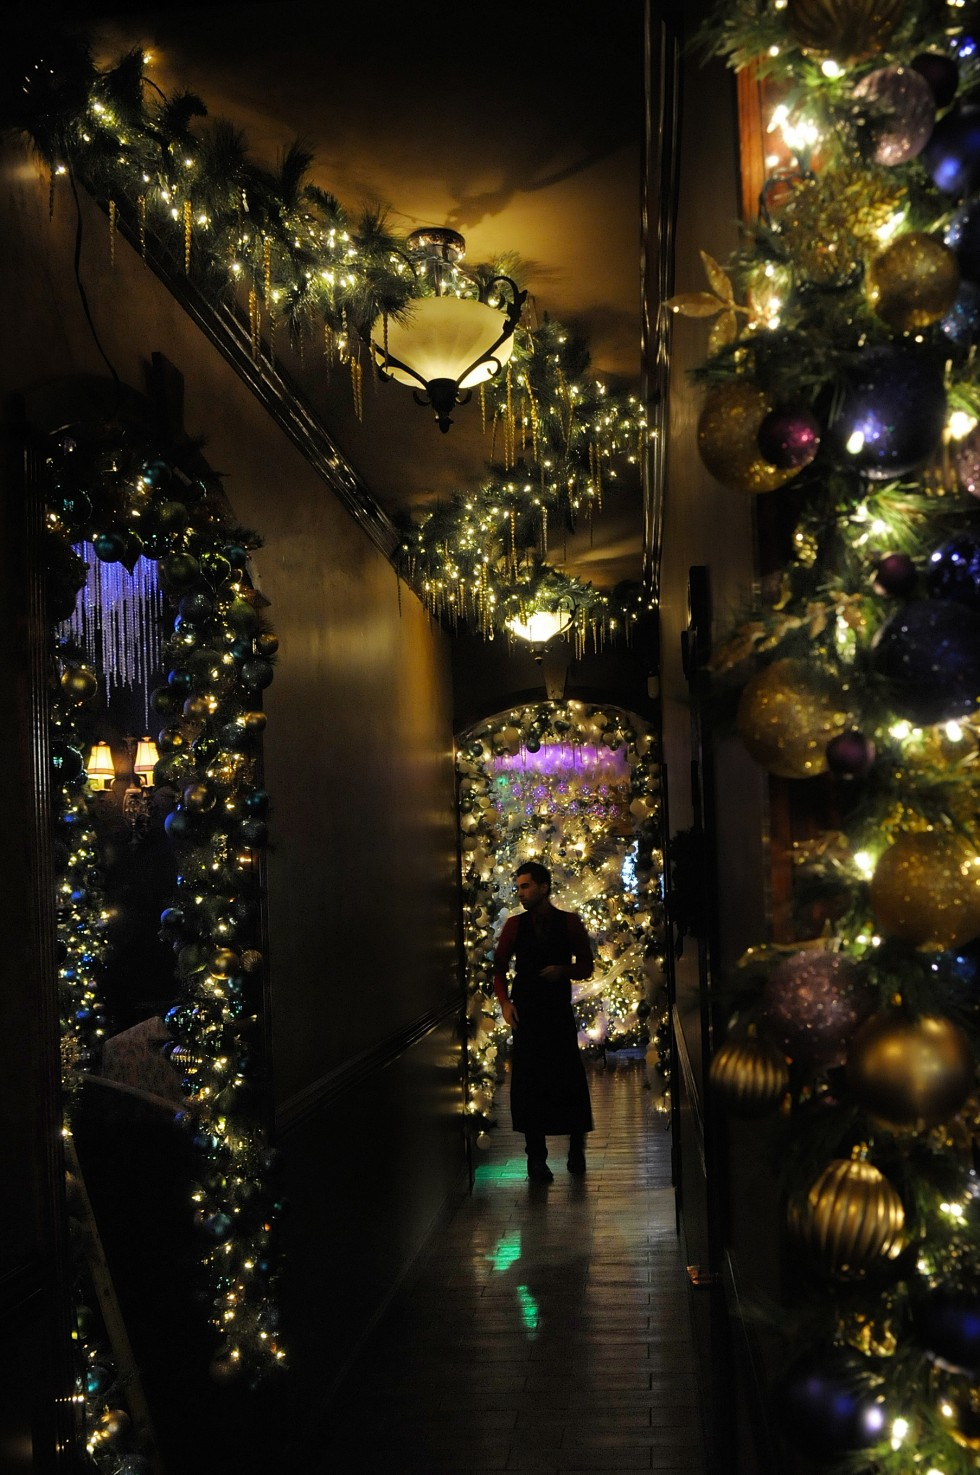 eye contact photo blog | cava restaurant decorates for christmas